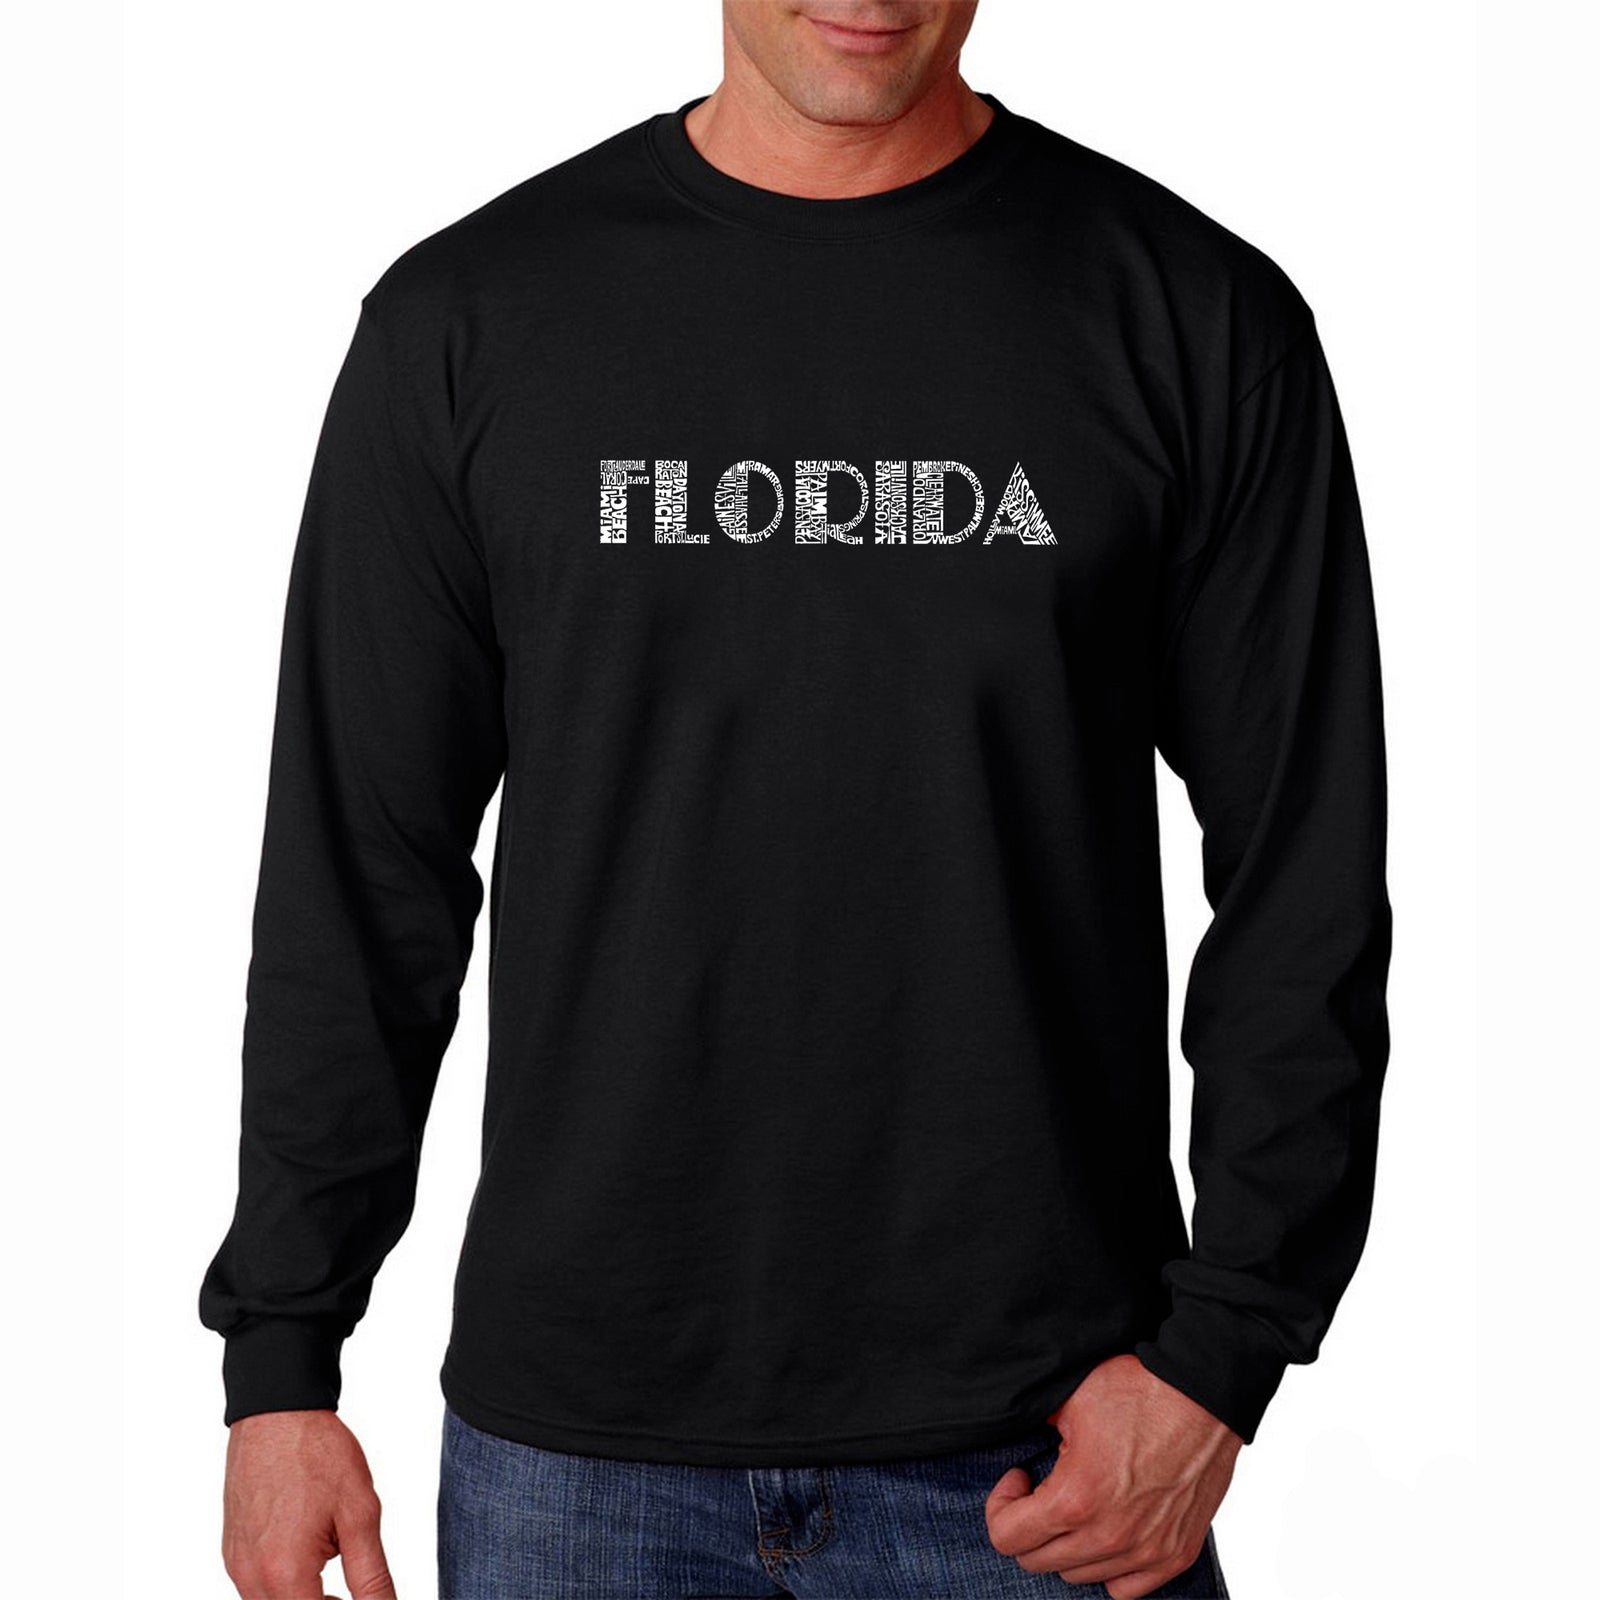 Men's Long Sleeve T-shirt - POPULAR CITIES IN FLORIDA